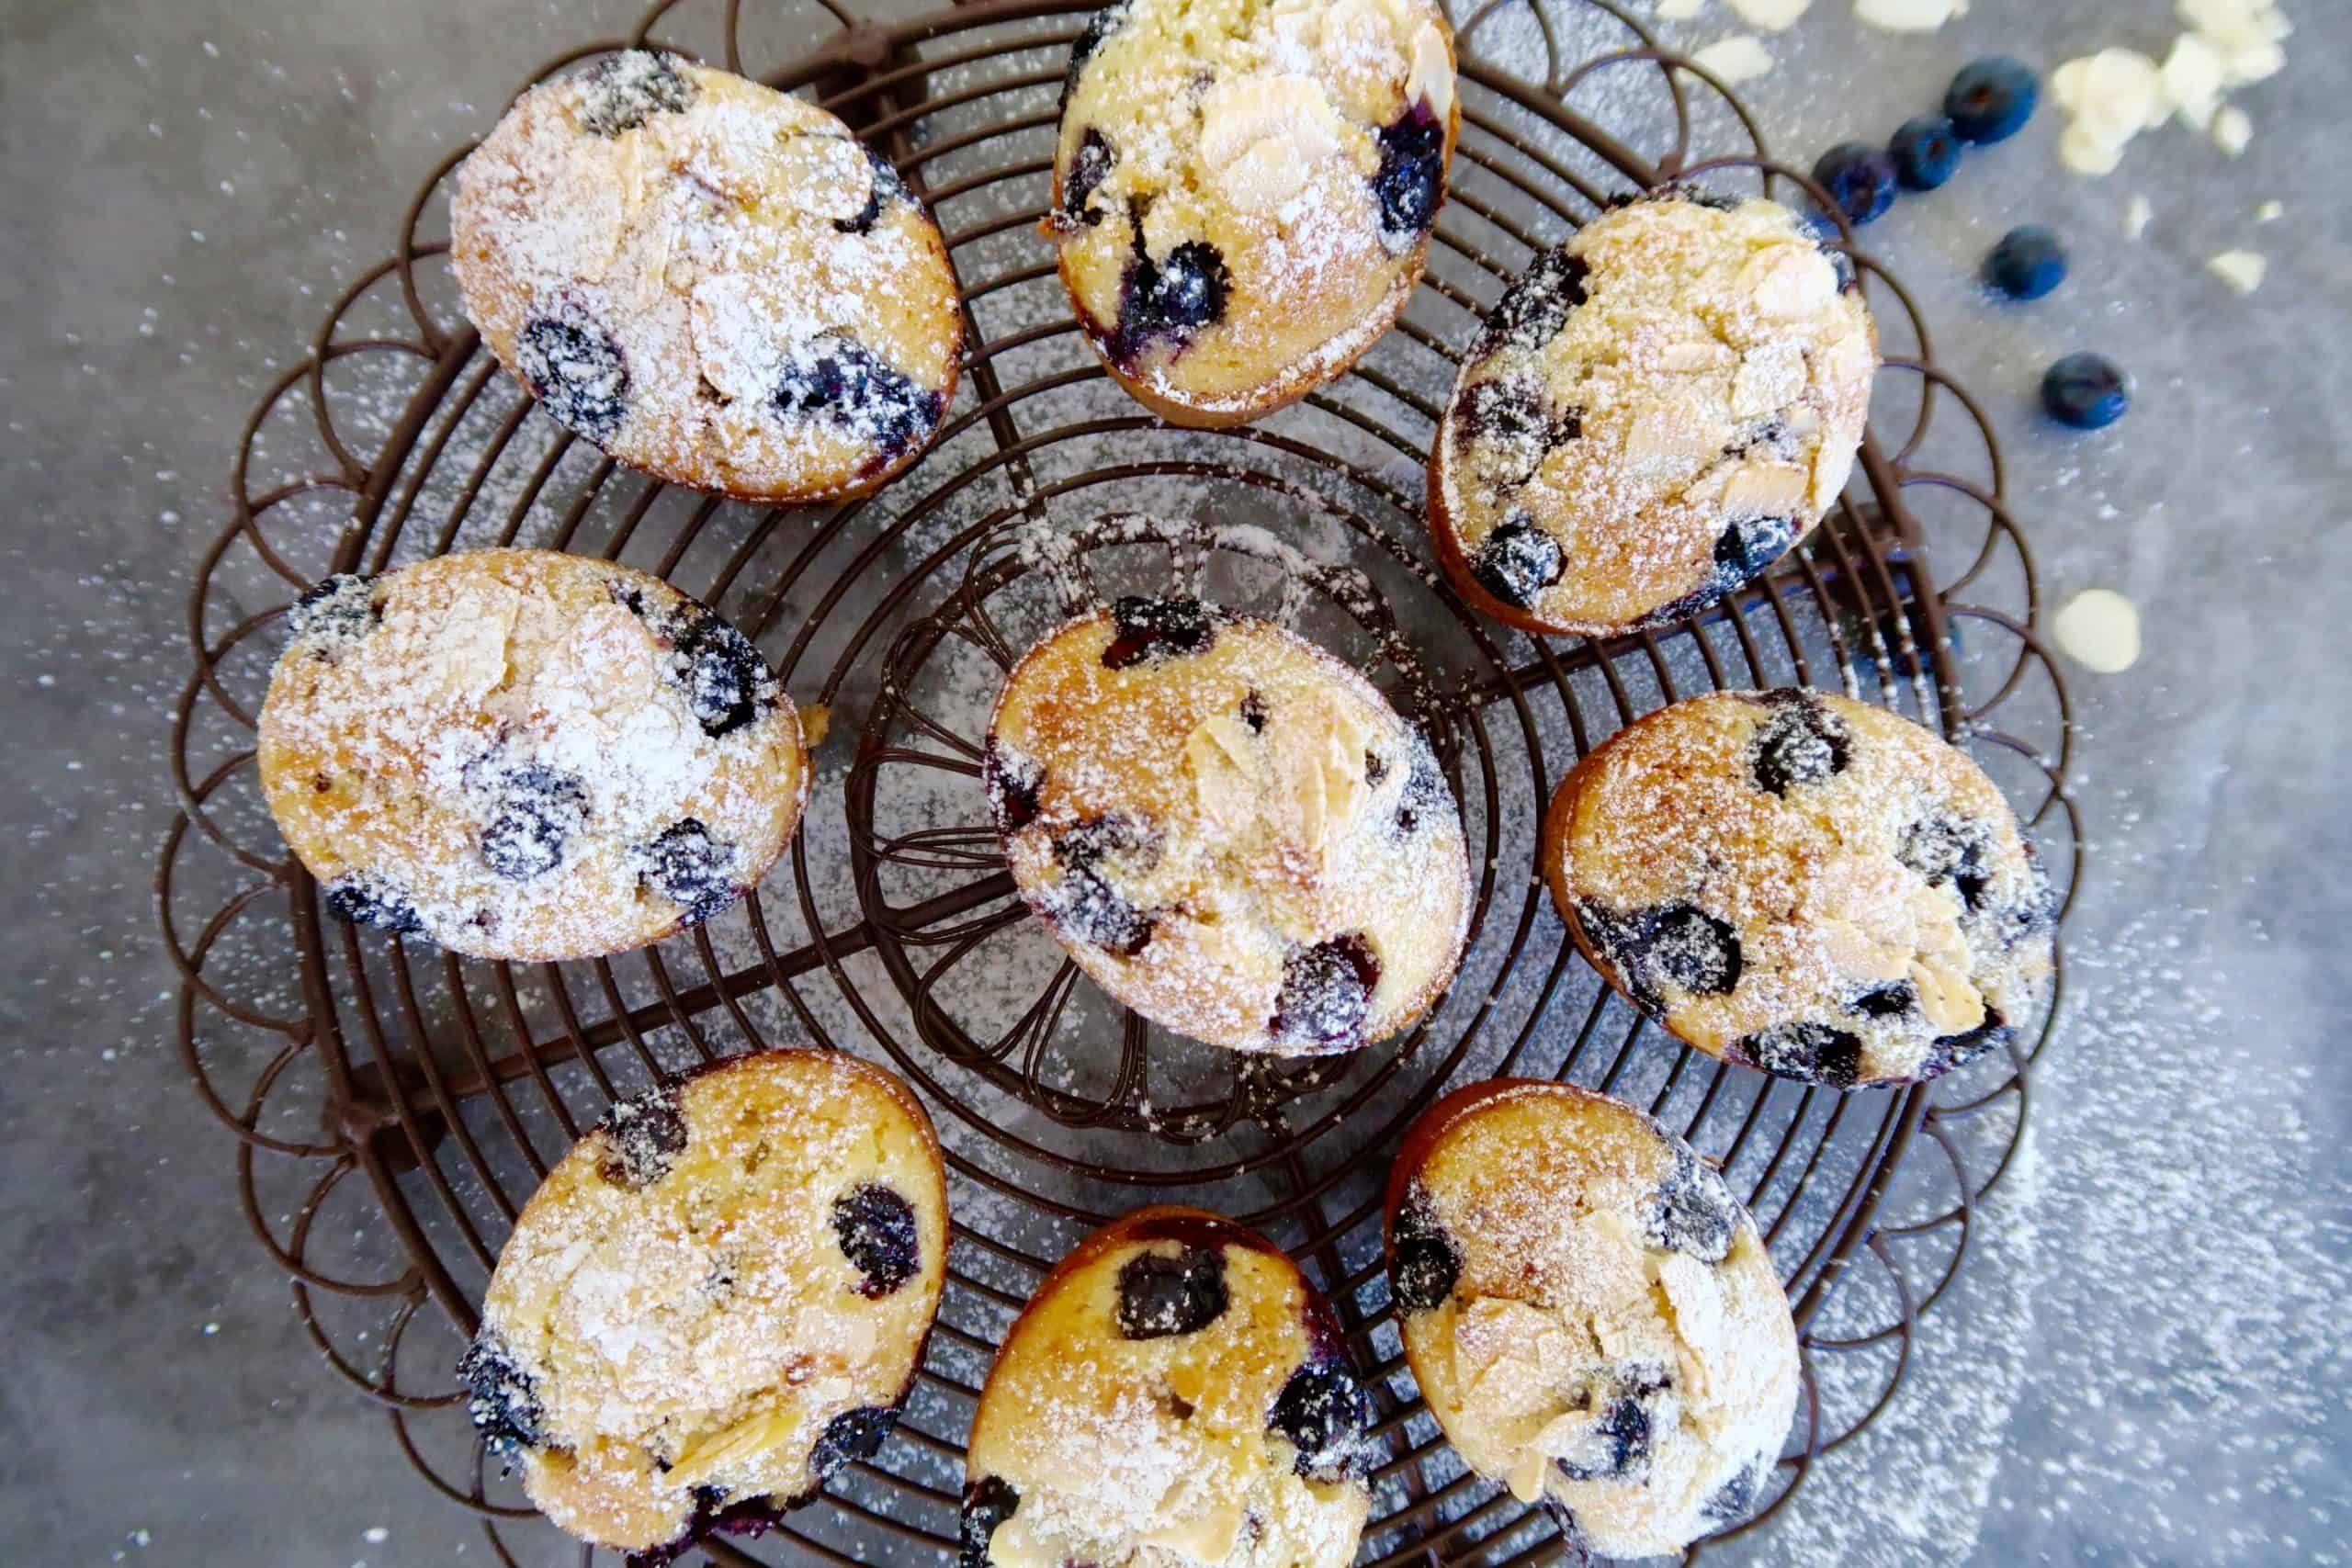 blueberry friands with orange zest baked and dusted with icing sugar on a brown round wire rack